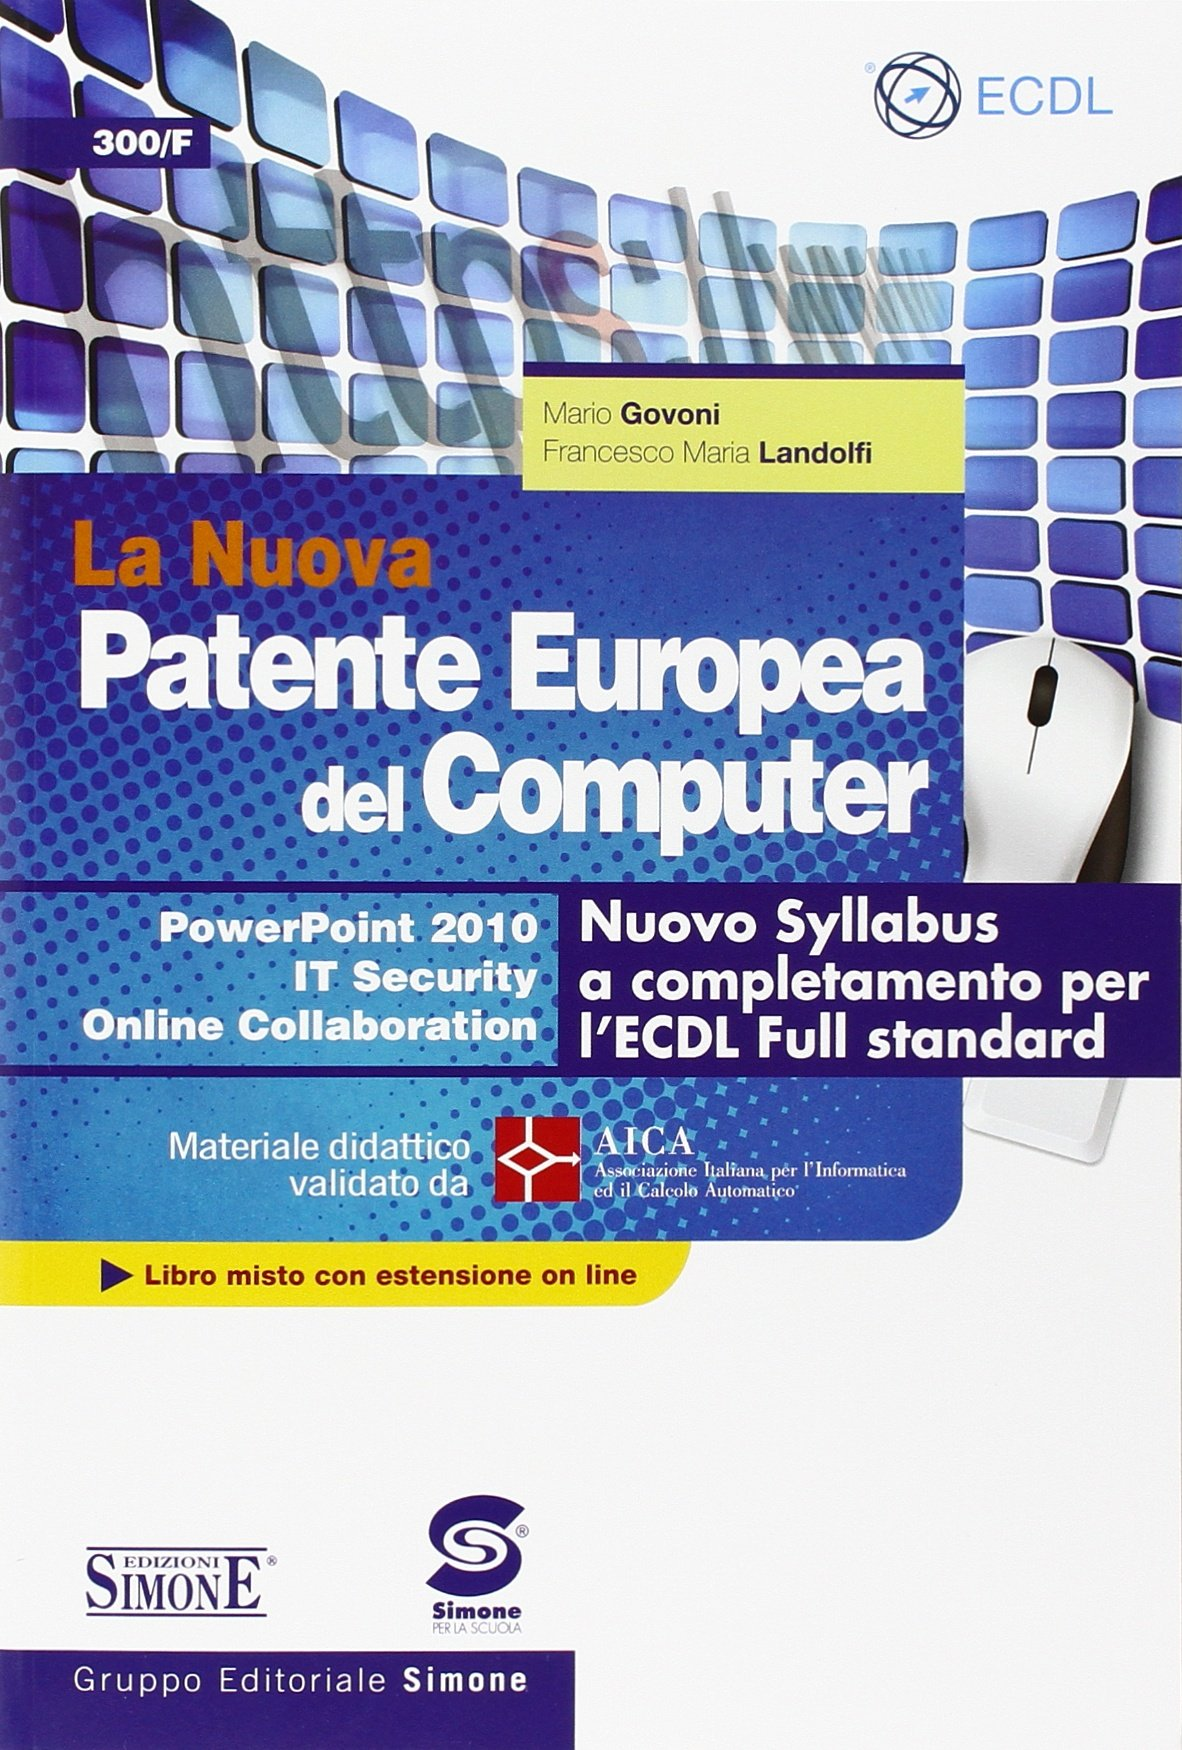 La nuova patente europea del computer. Nuovo Syllabus a completamento per l'ECDL full standard. Power point 2010. IT security. Online collaboration. Con espansione online Copertina flessibile – 1 feb 2014 Mario Govoni Francesco M. Landolfi Edizioni Giuridi